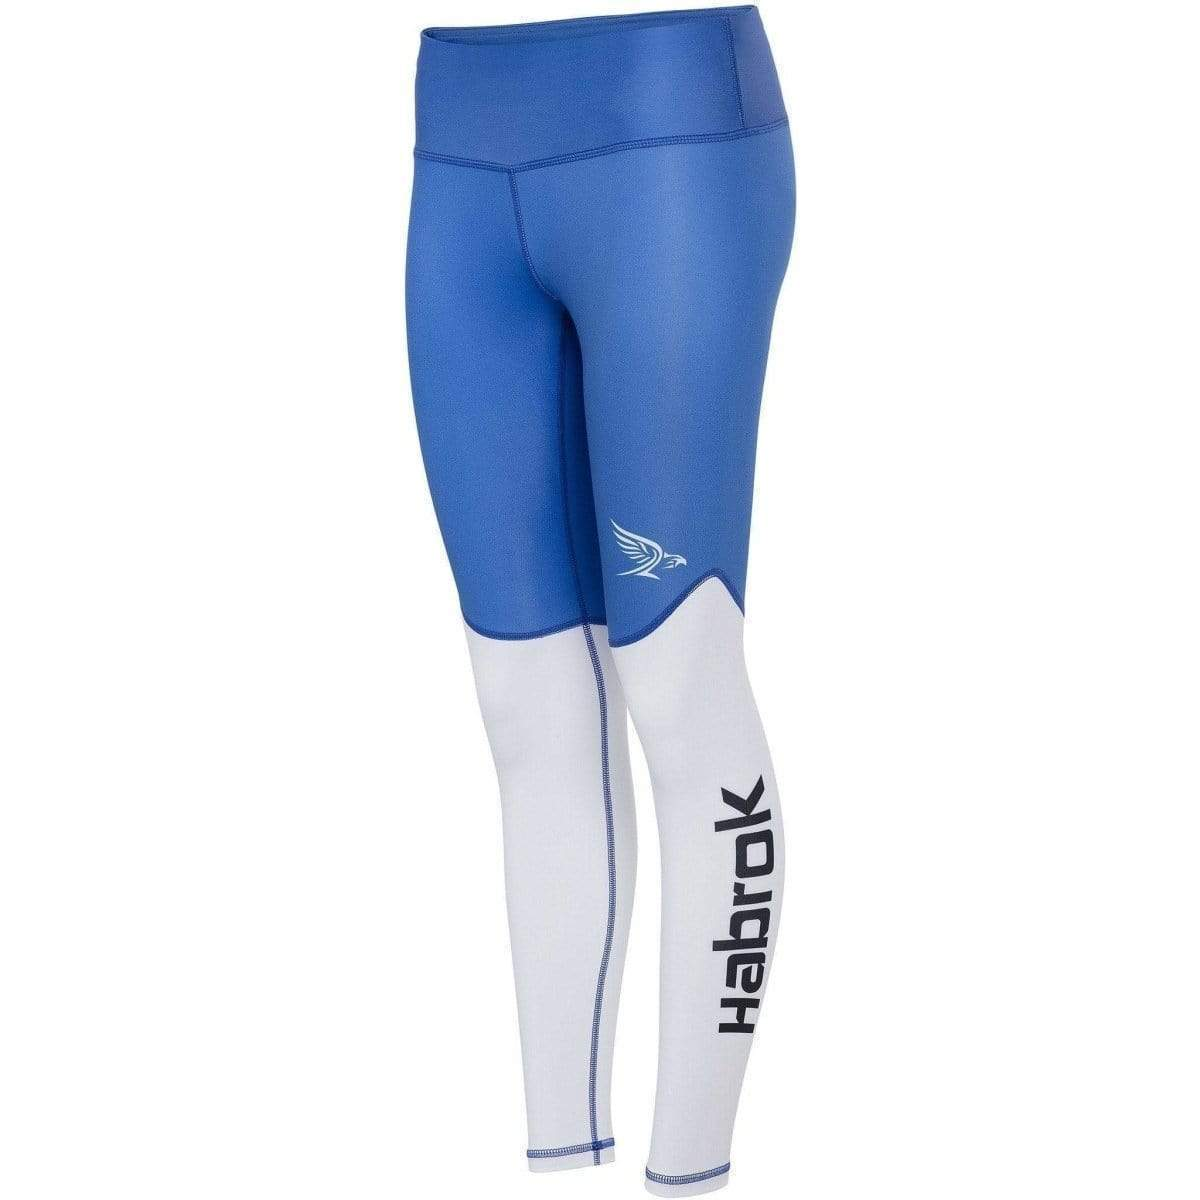 Habrok Spats XS / BLUE Transform 2.5 | Compression Pants | Women